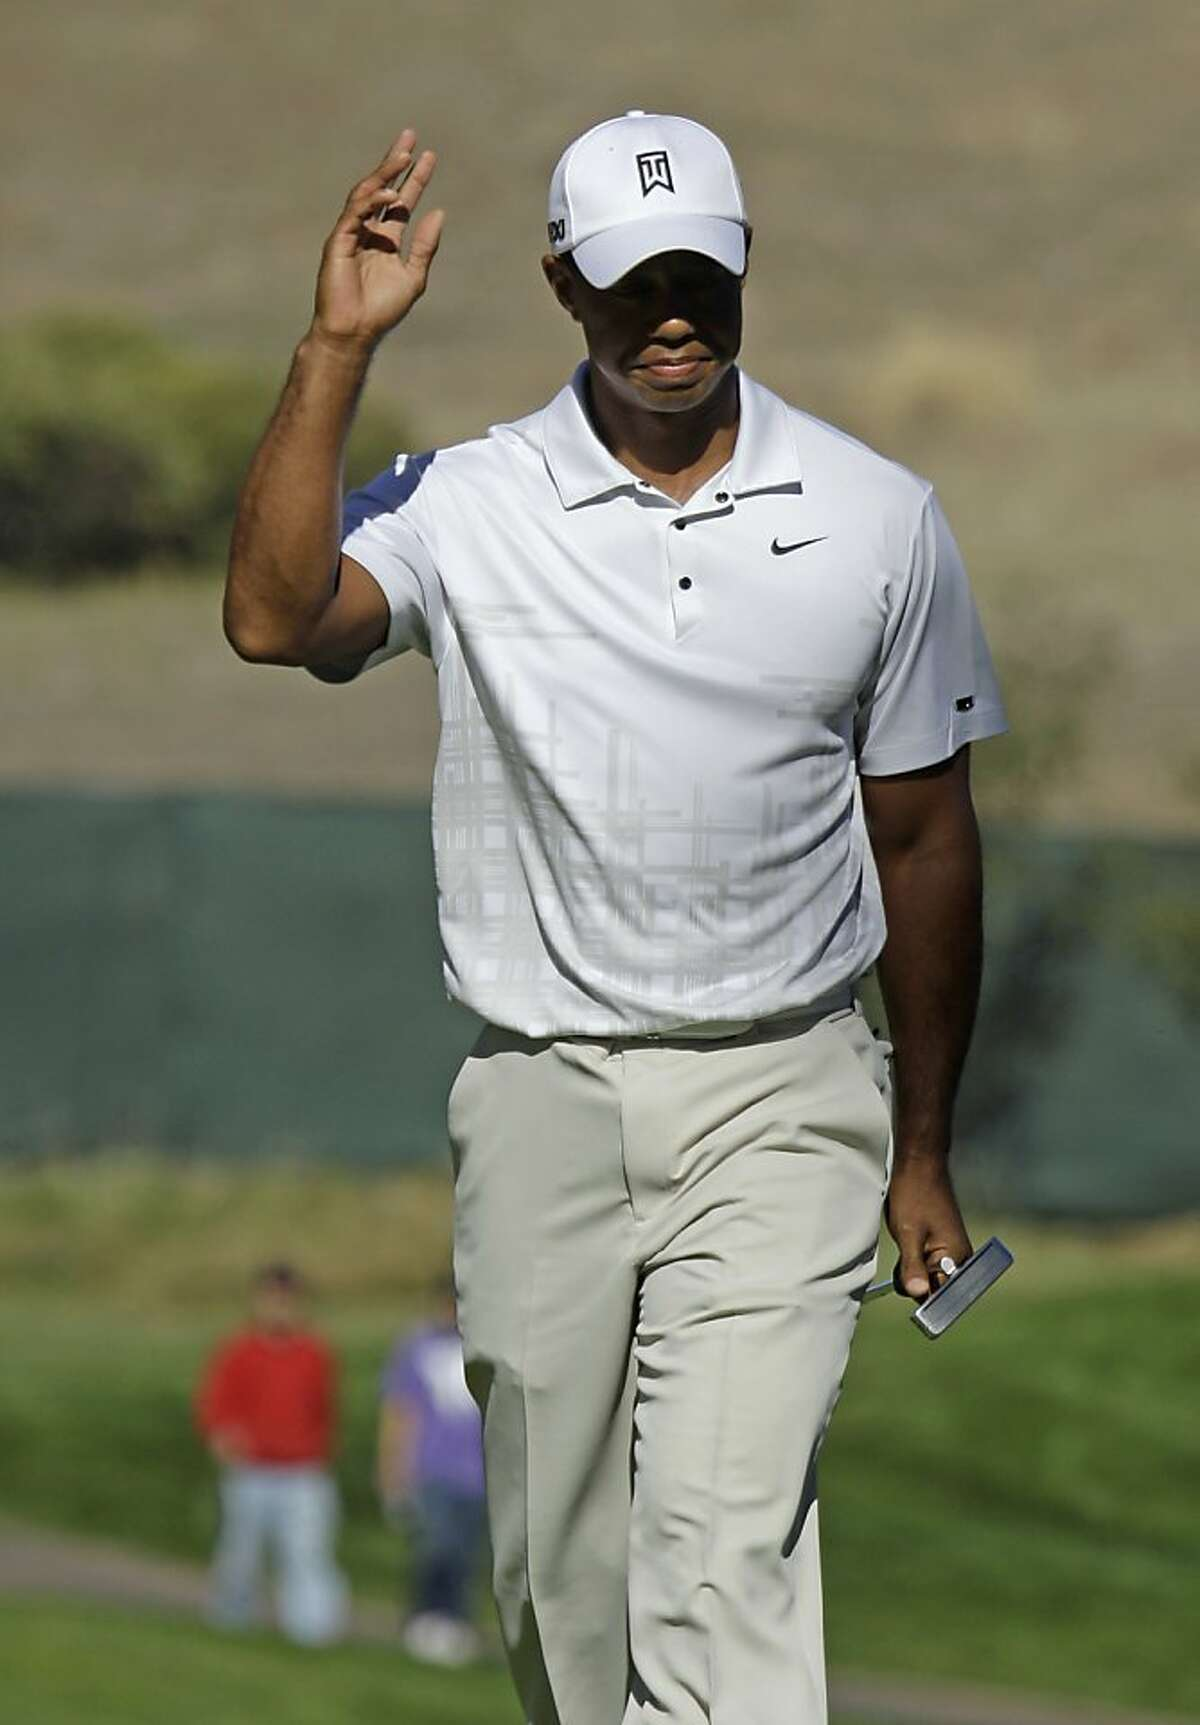 Tiger Woods waves to fans after making a birdie putt on the 11th hole during the third round of the Frys.com Open golf tournament Saturday, Oct. 8, 2011, in San Martin, Calif. (AP Photo/Ben Margot)